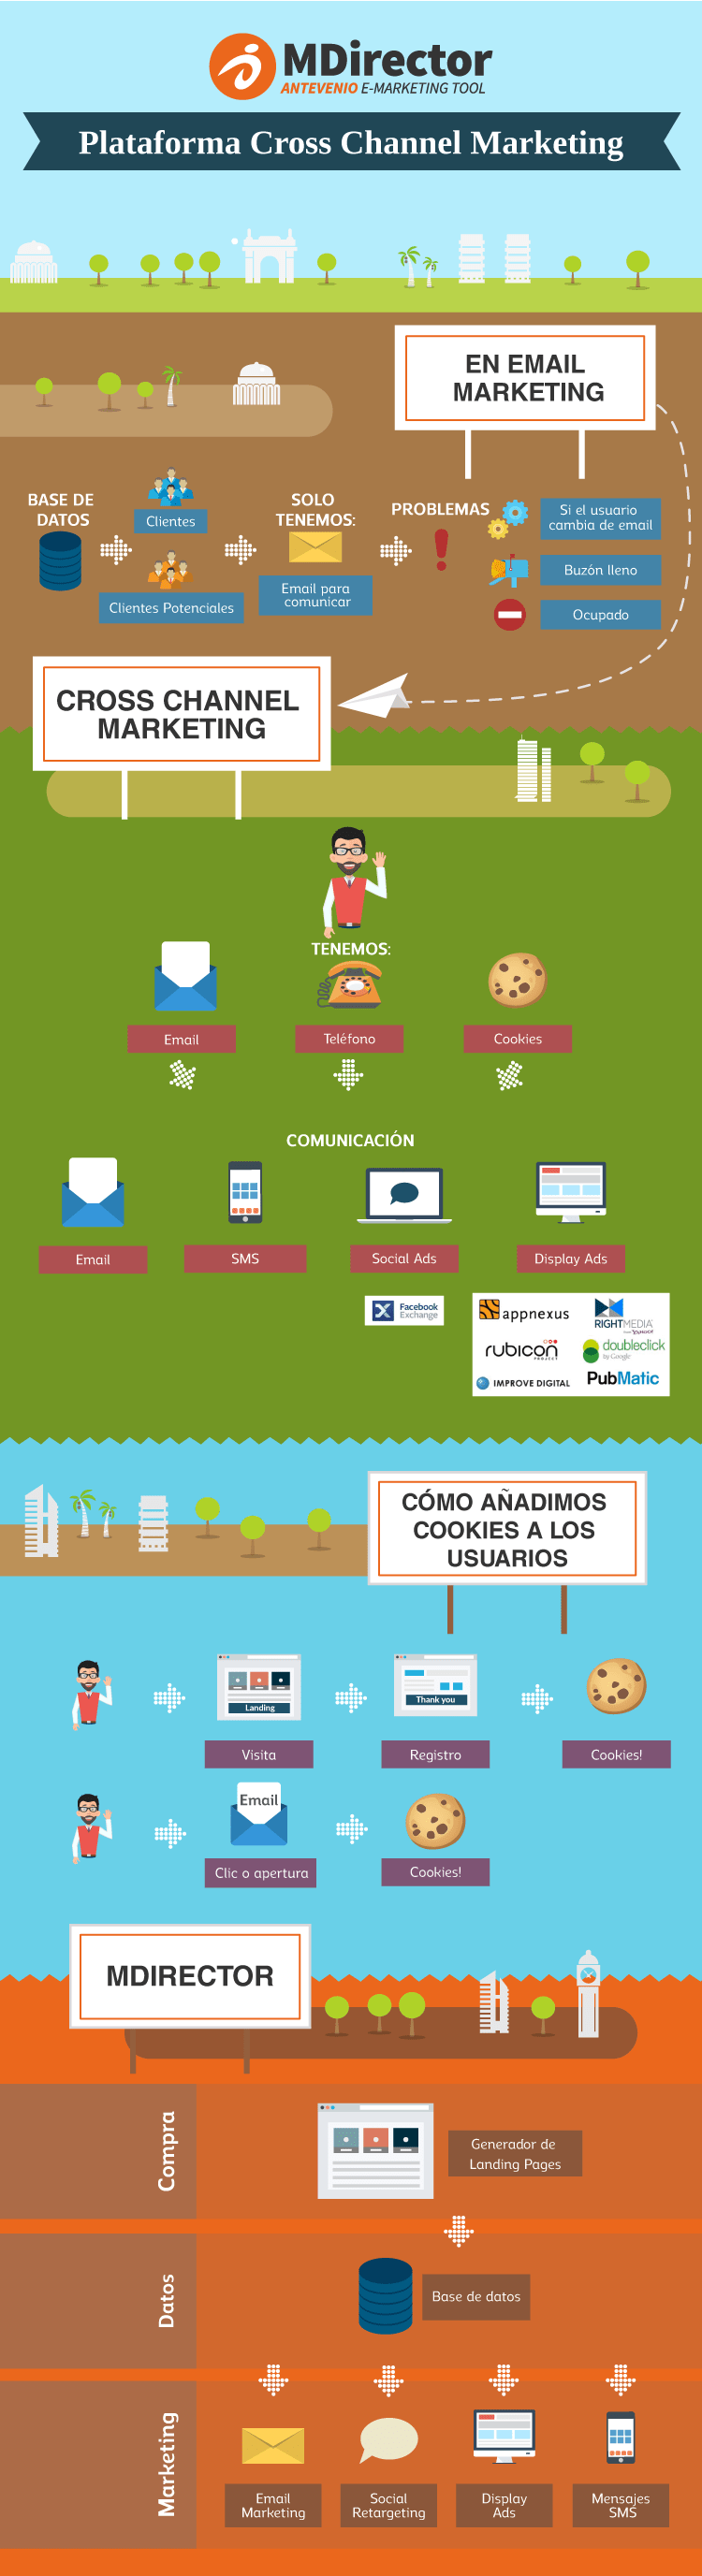 Funcionalidad del Cross Channel Marketing